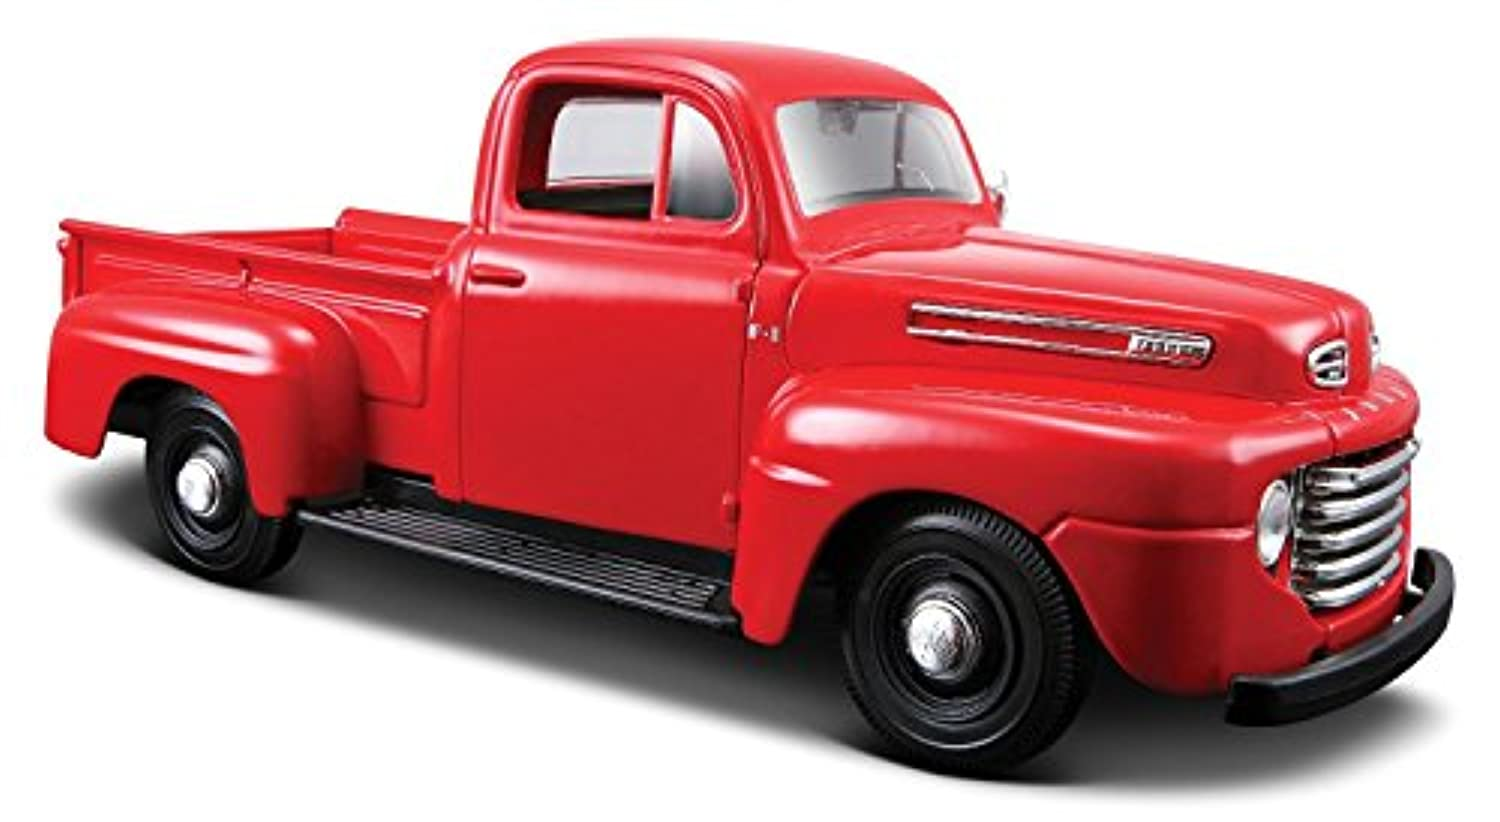 Maisto 1:25 Scale 1948 Ford F-1 Pickup Diecast Truck Vehicle (Colors May Vary) [並行輸入品]